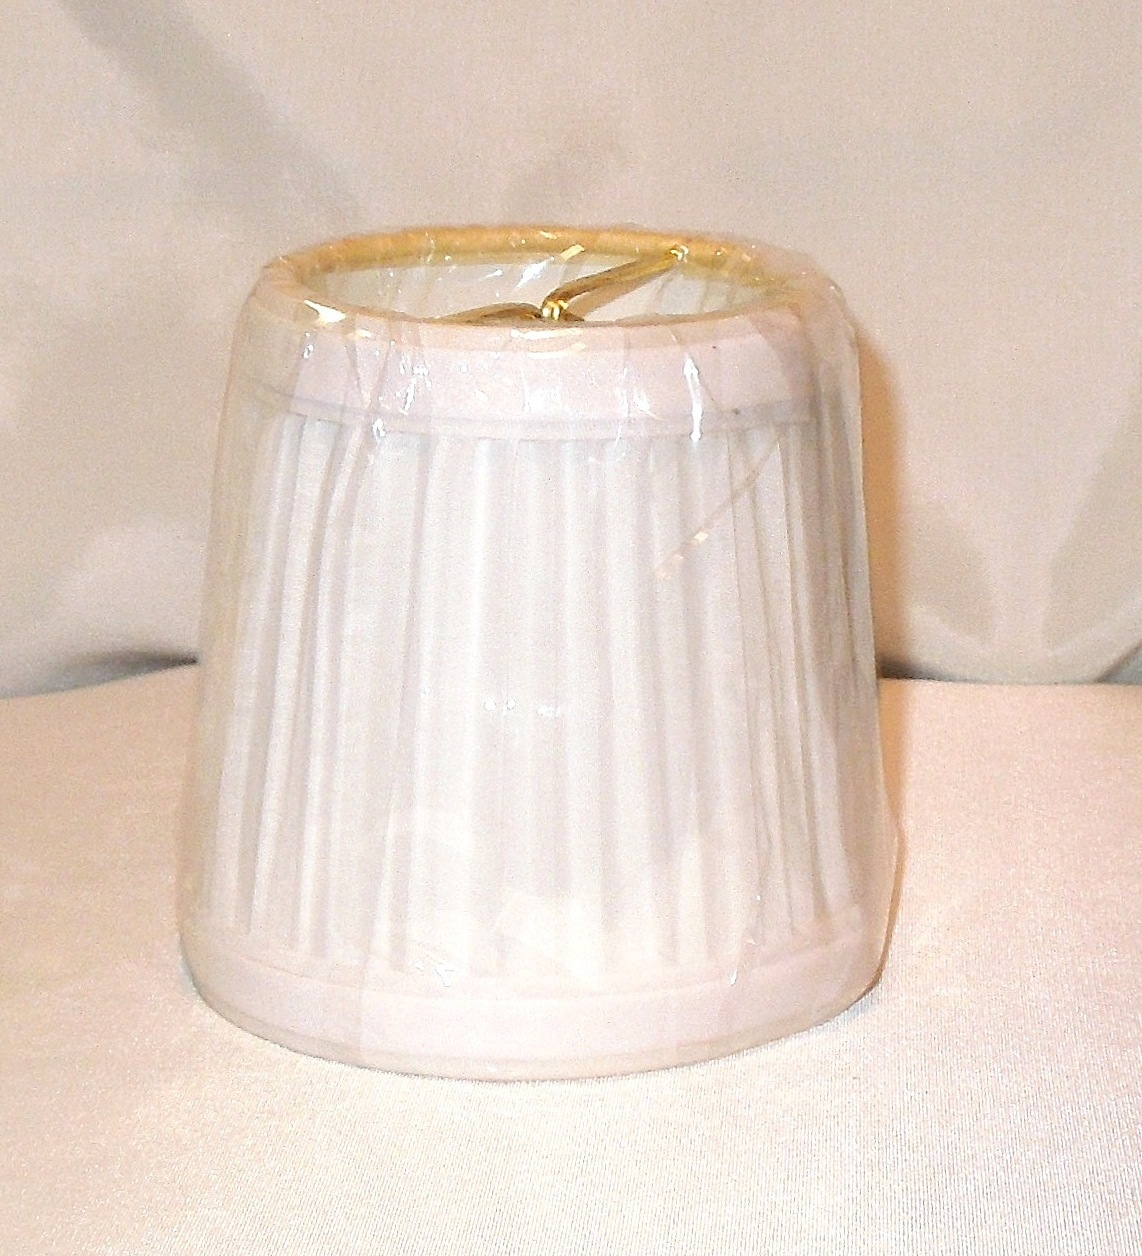 Get Two Vintage Mini Lamp Shade With White Pleated Fabric